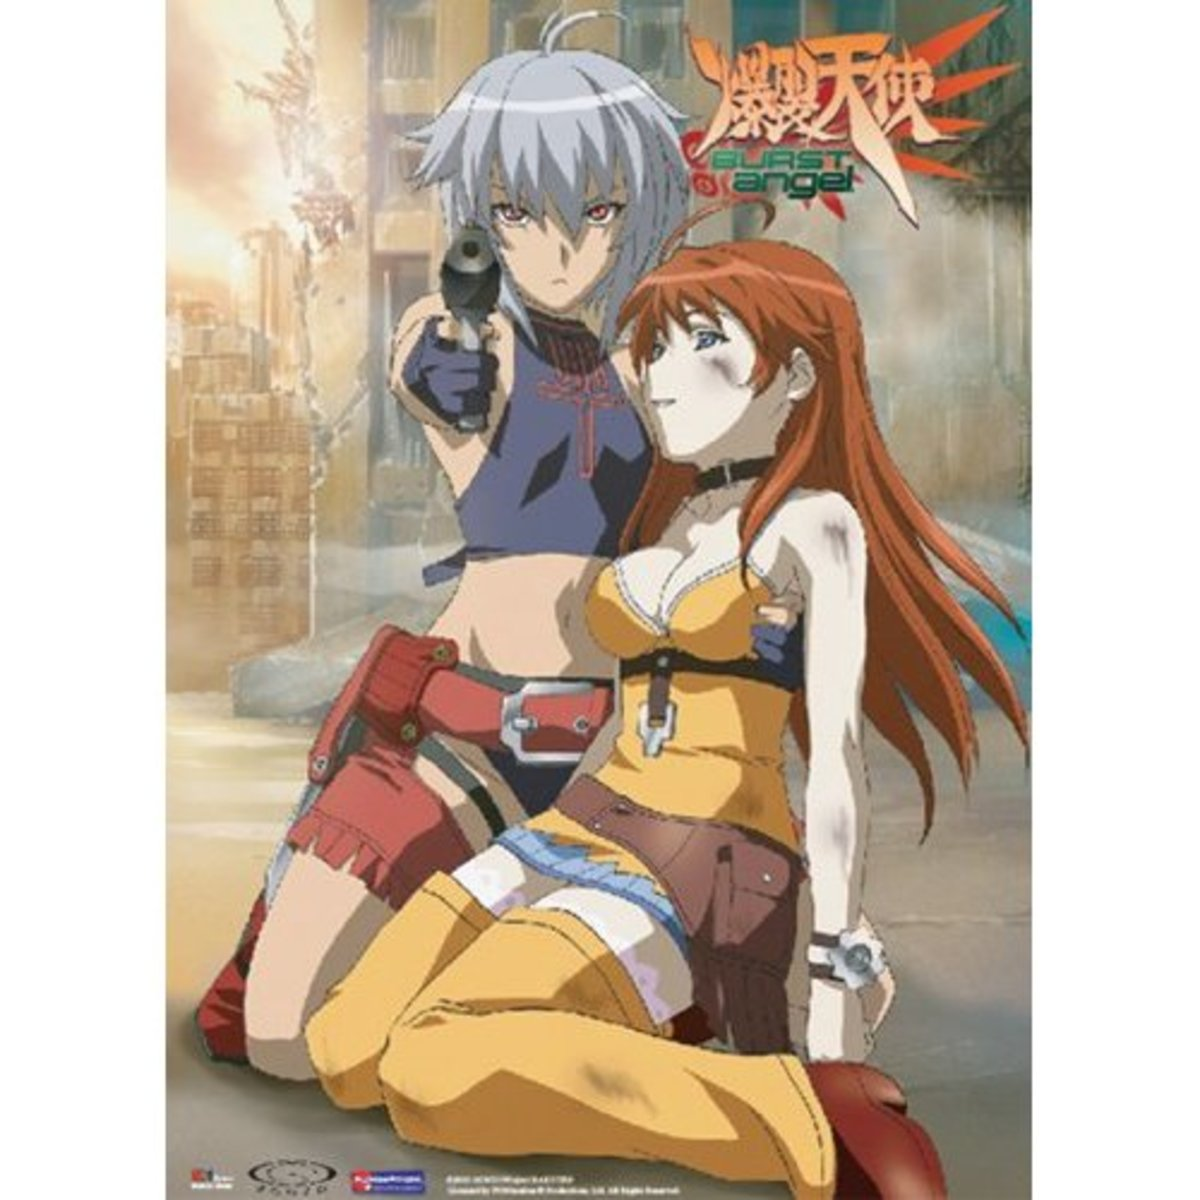 A common scene from the anime, it shows Jo saving Meg after she was kidnapped.